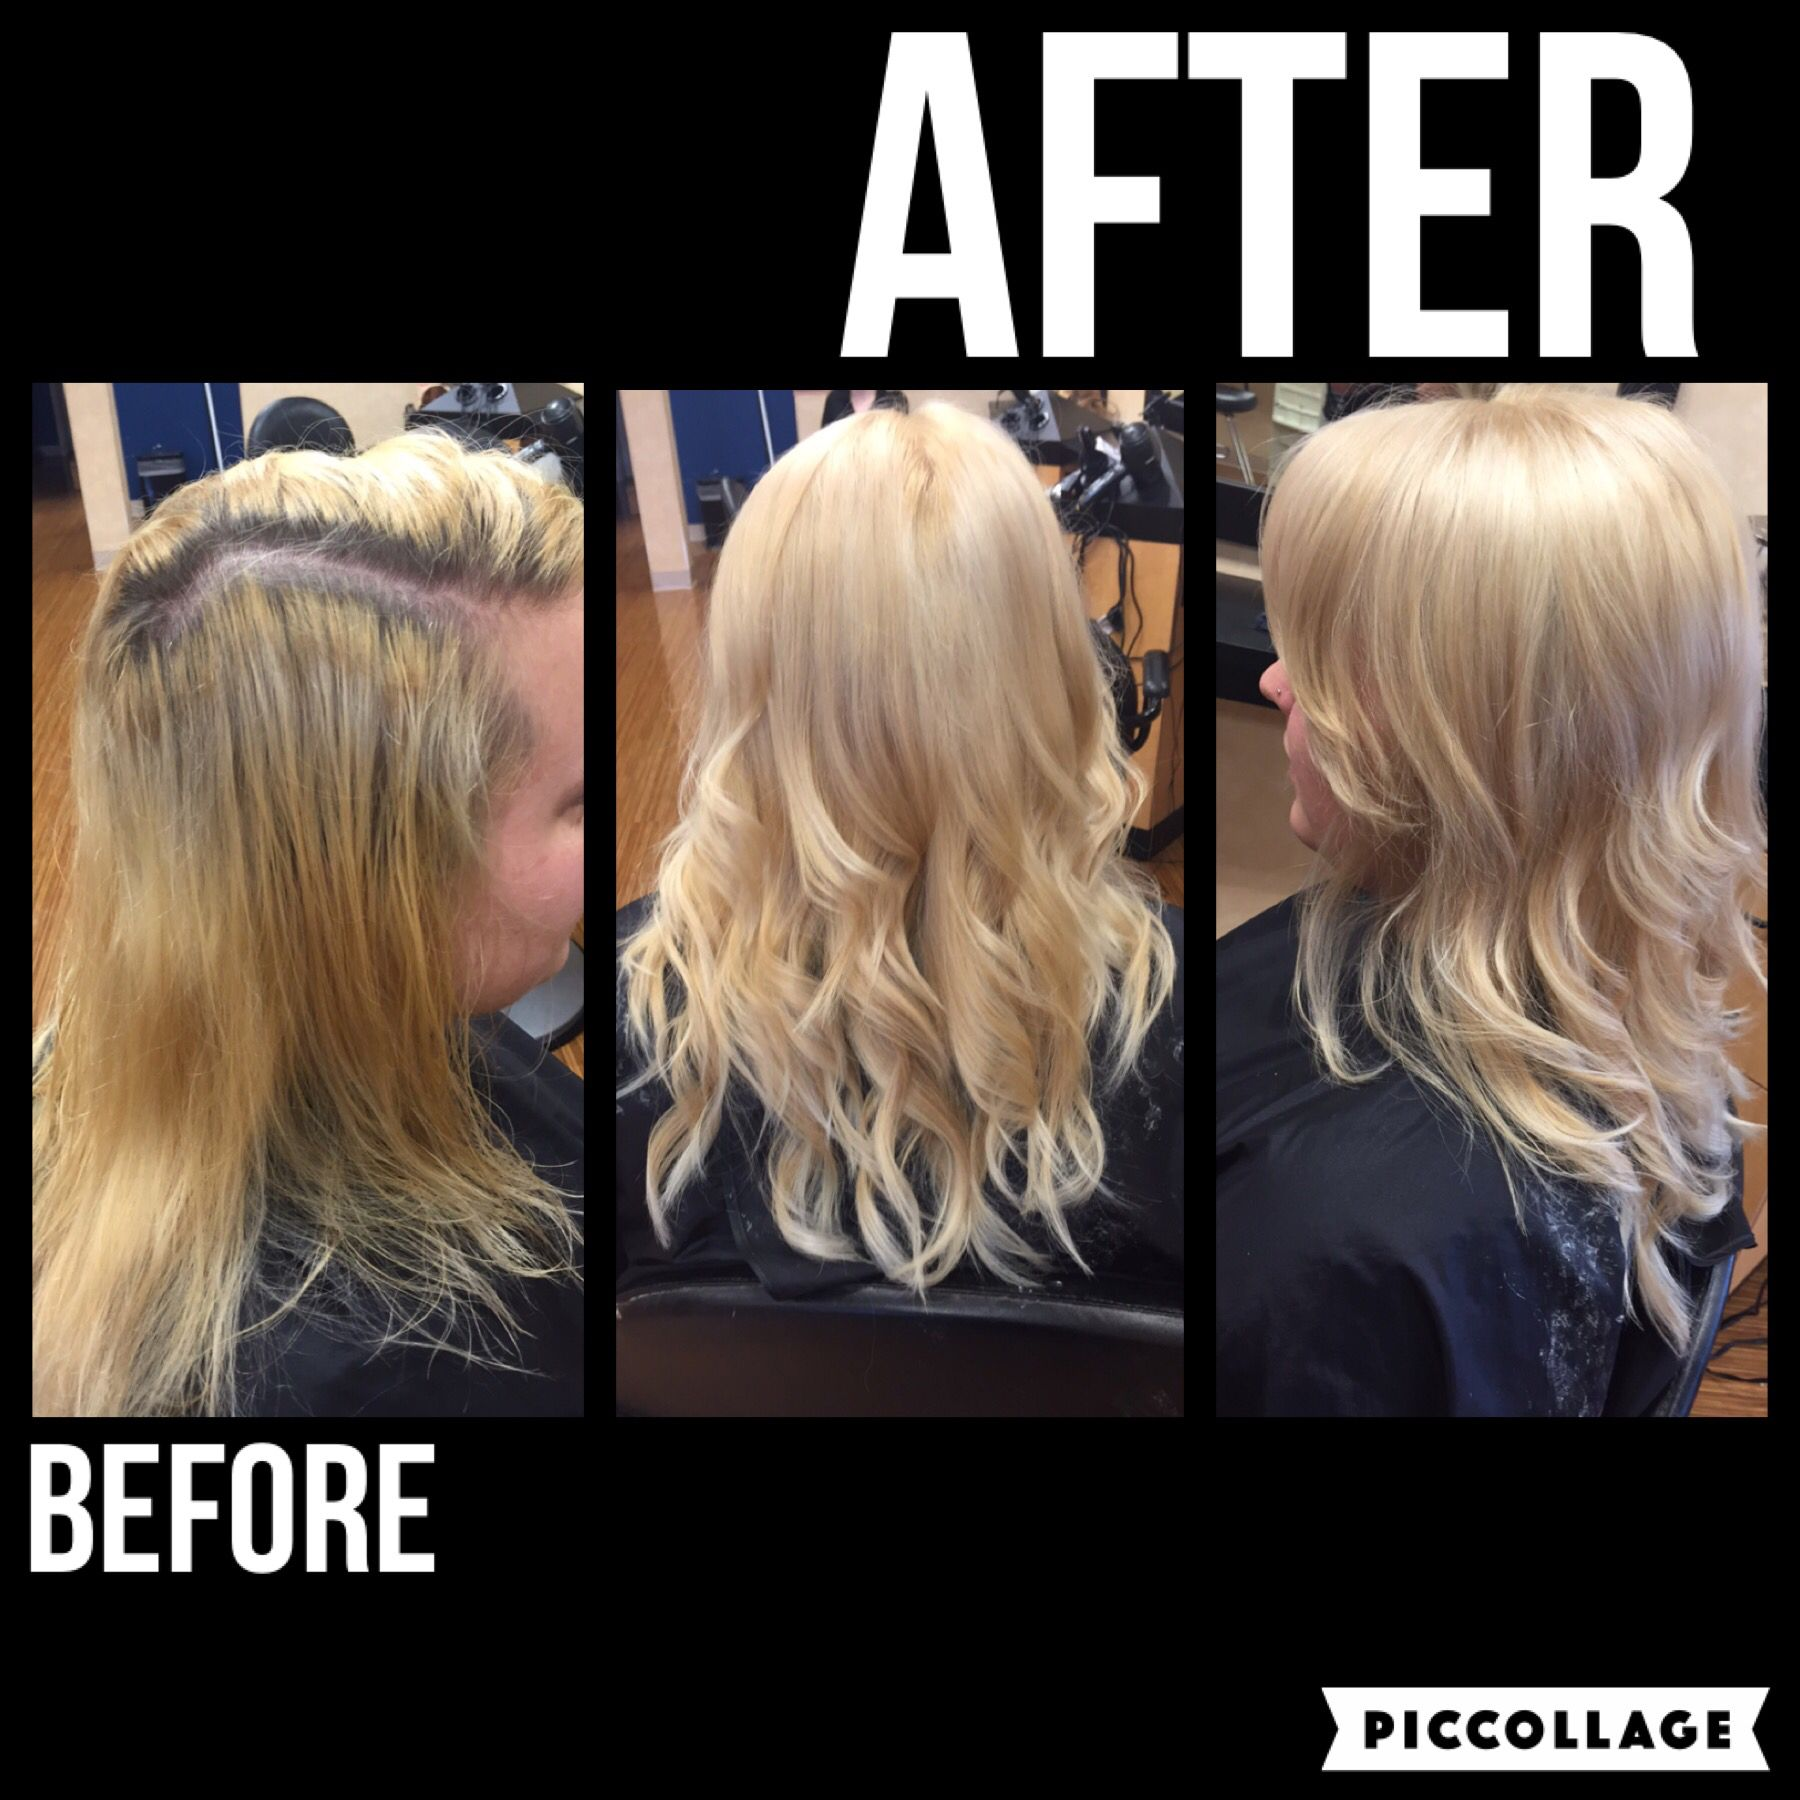 Hair Done By Eden Crockett In Fort Walton Beach Florida Color